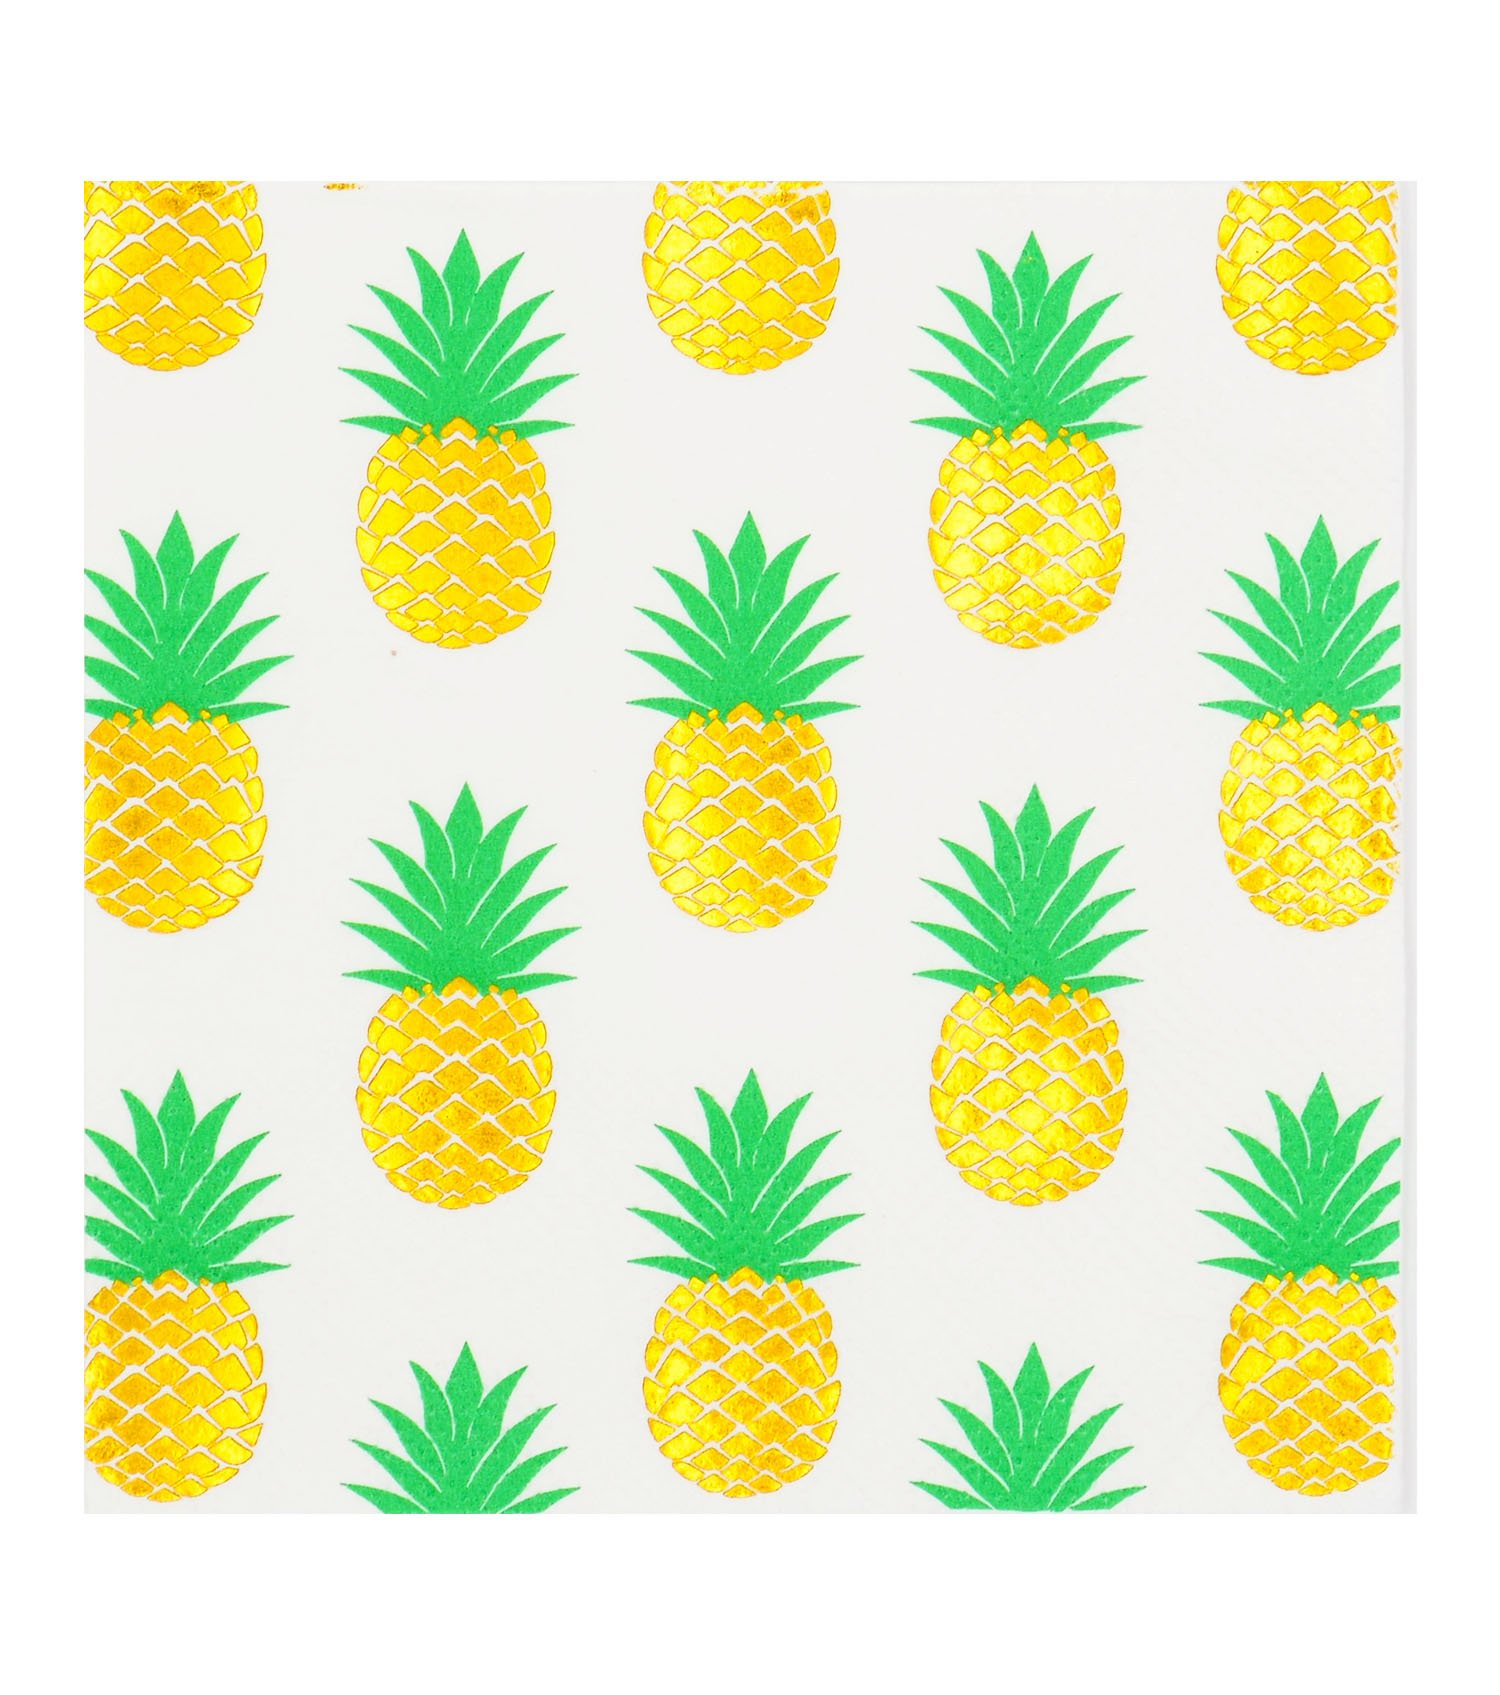 LIHI 40count Luncheon Napkins, 3-Ply, Pack of 40(2 Packs of 20 Napkins) Beverage &Cocktail Napkins,Decorative Paper Napkins 5x5 inch,ideal for Wedding, Party, Birthday,Decoupage,gold pineapple,summer